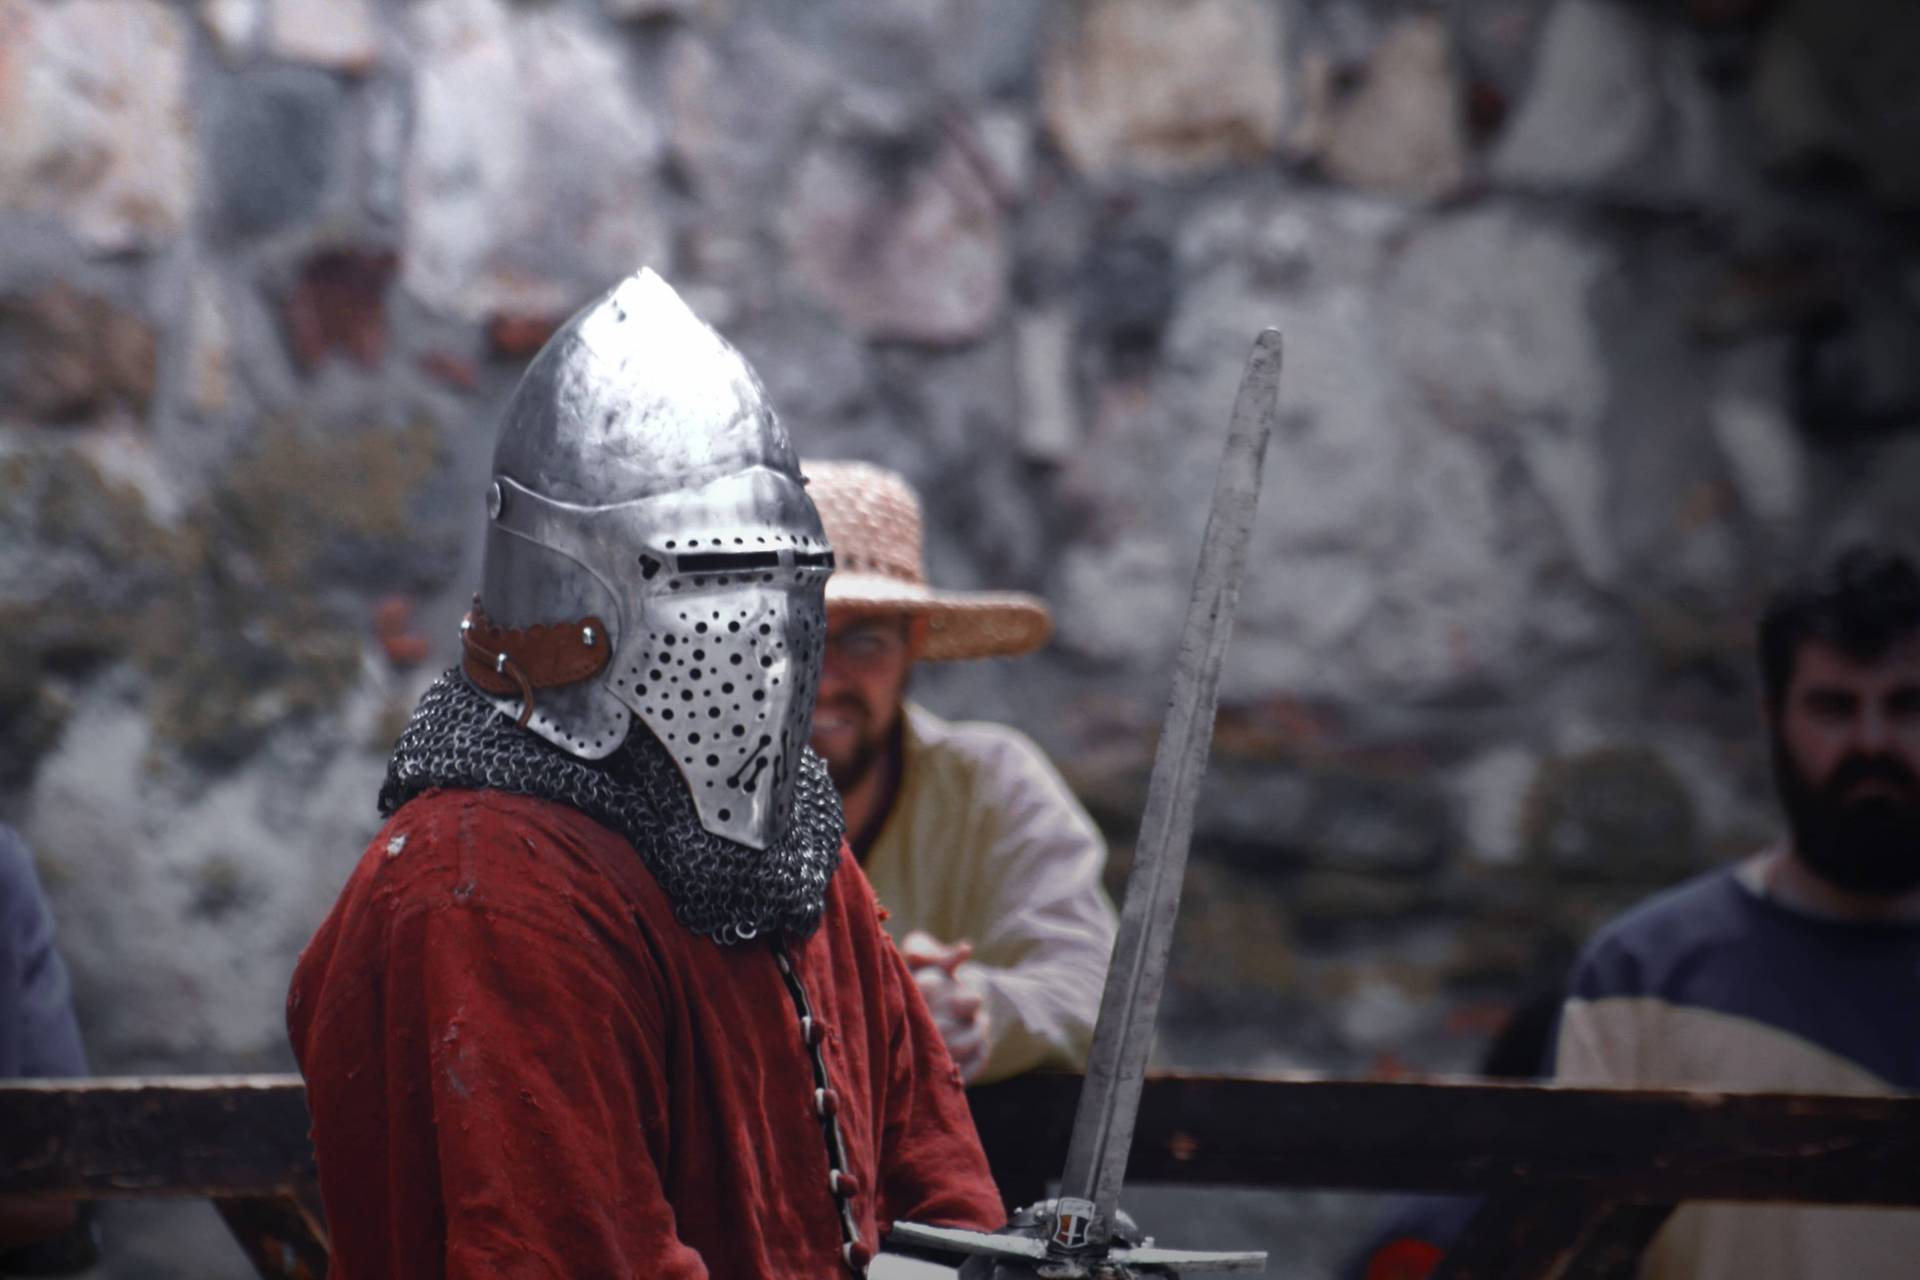 knight participating in a medieval sword fight